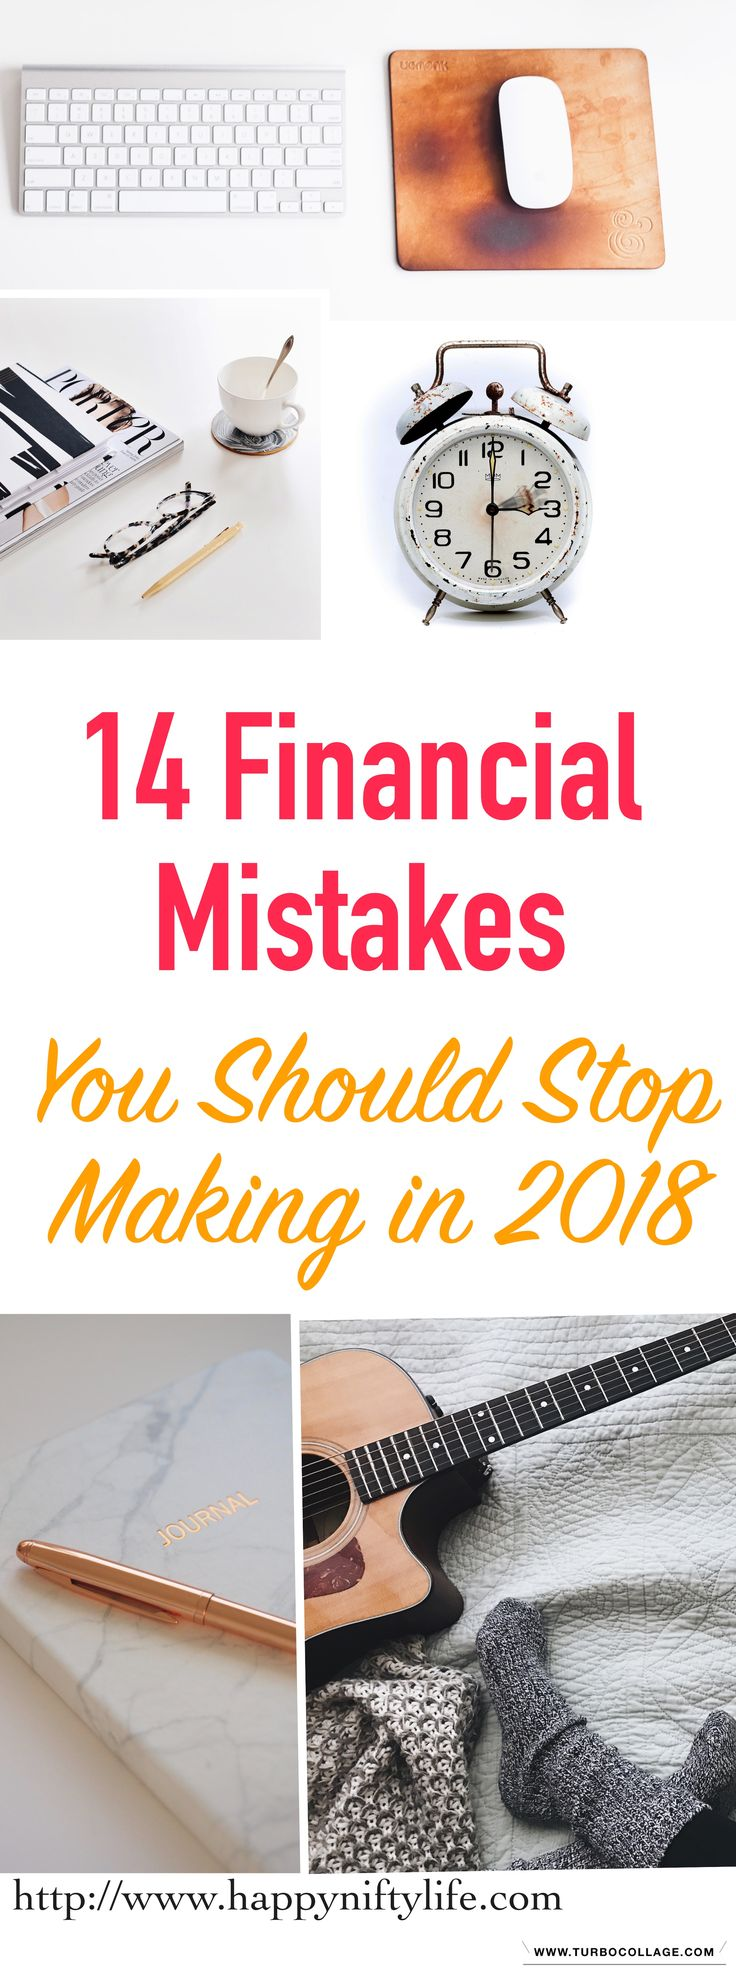 Are you making any of these financial mistakes? These money blunders could be preventing you from reaching your financial goals.